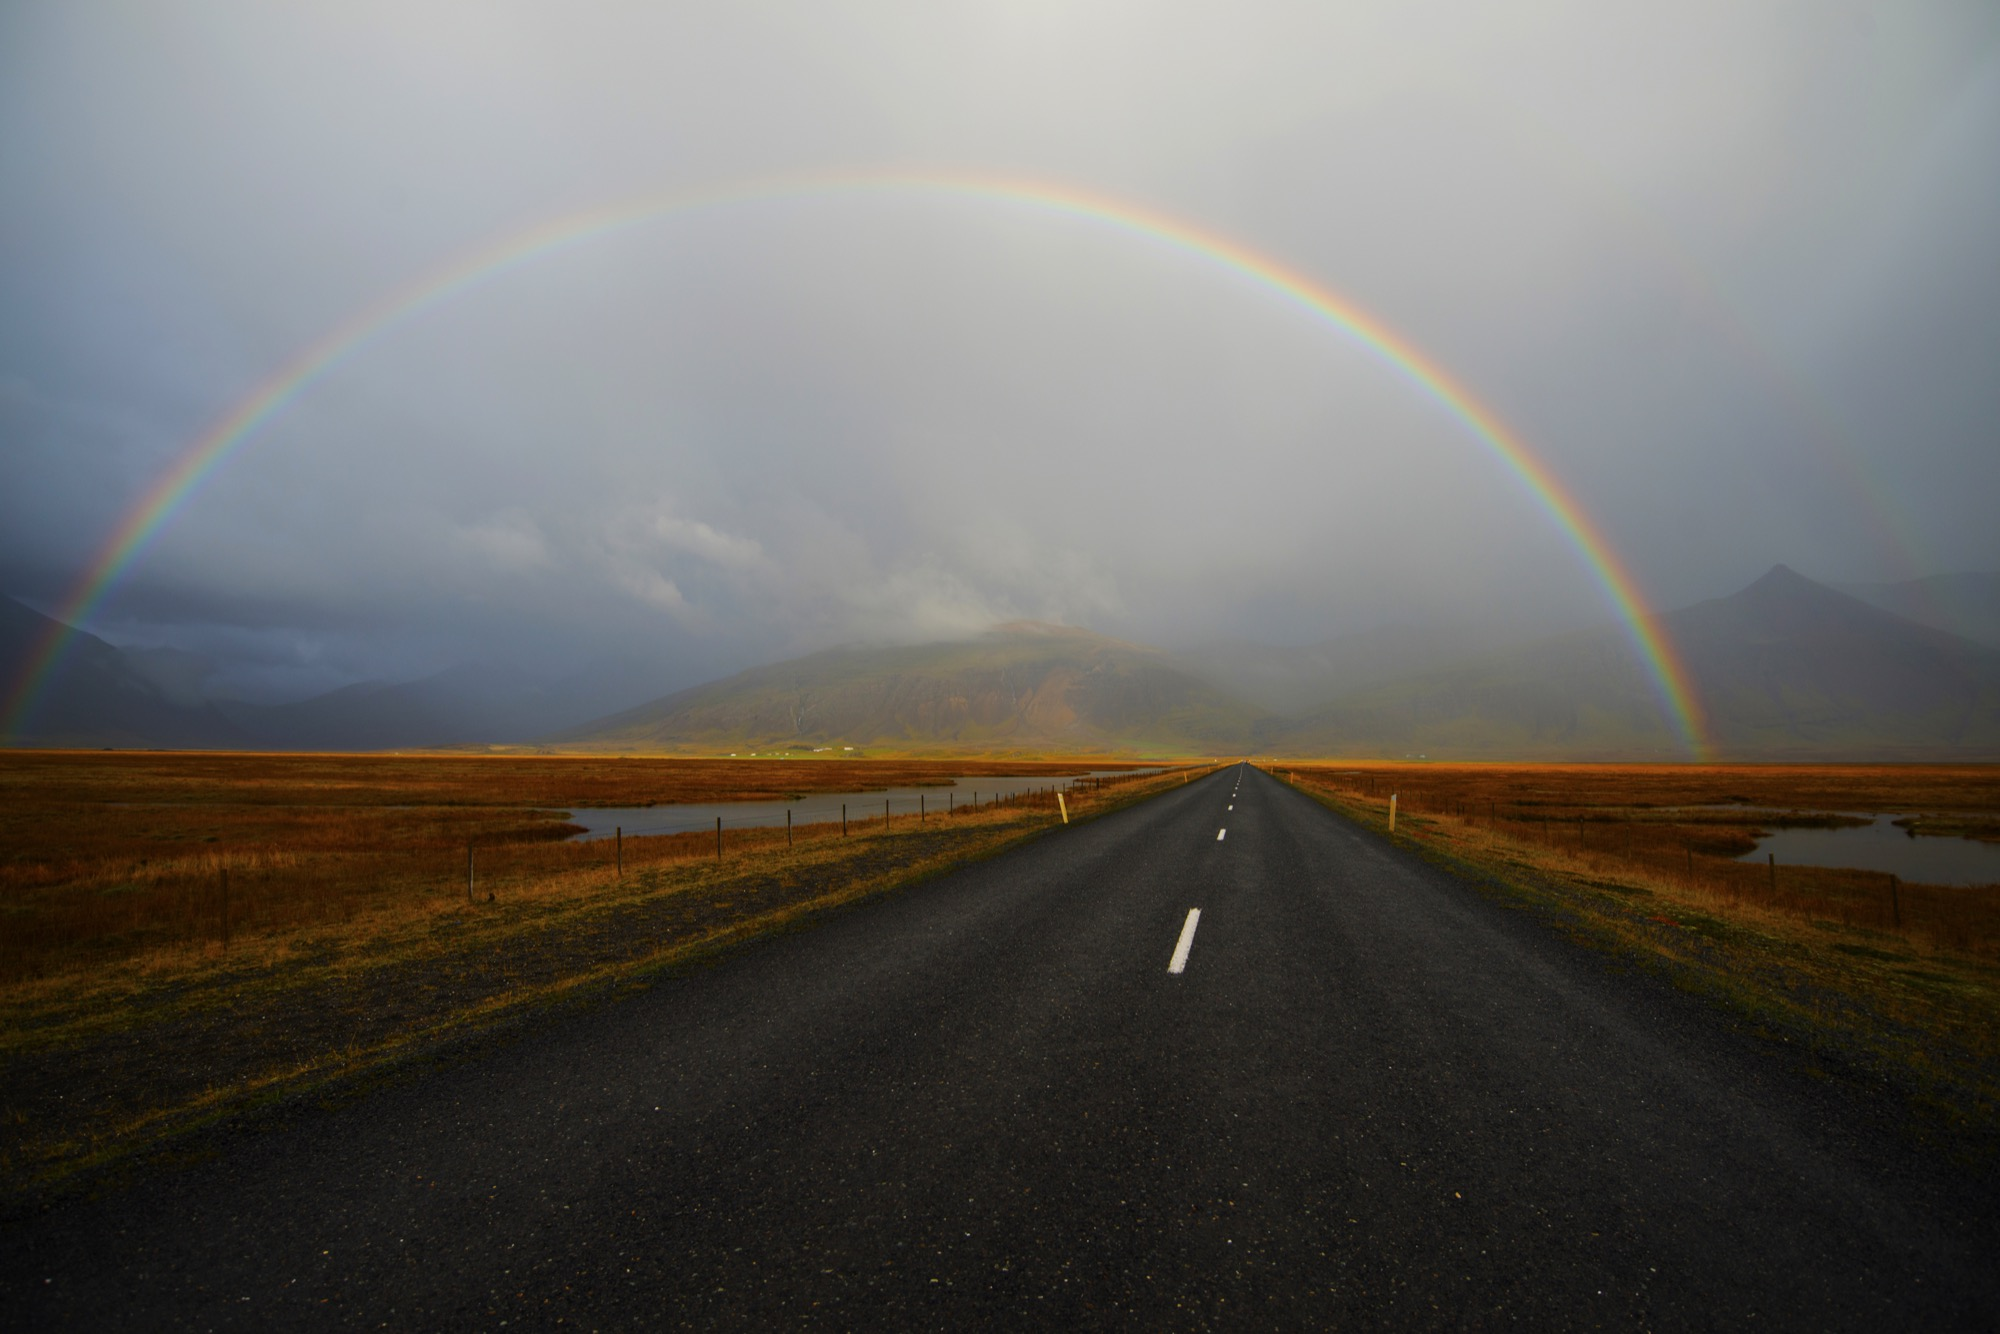 Rainbow over the road, Iceland / Photo by Joe Goldberg